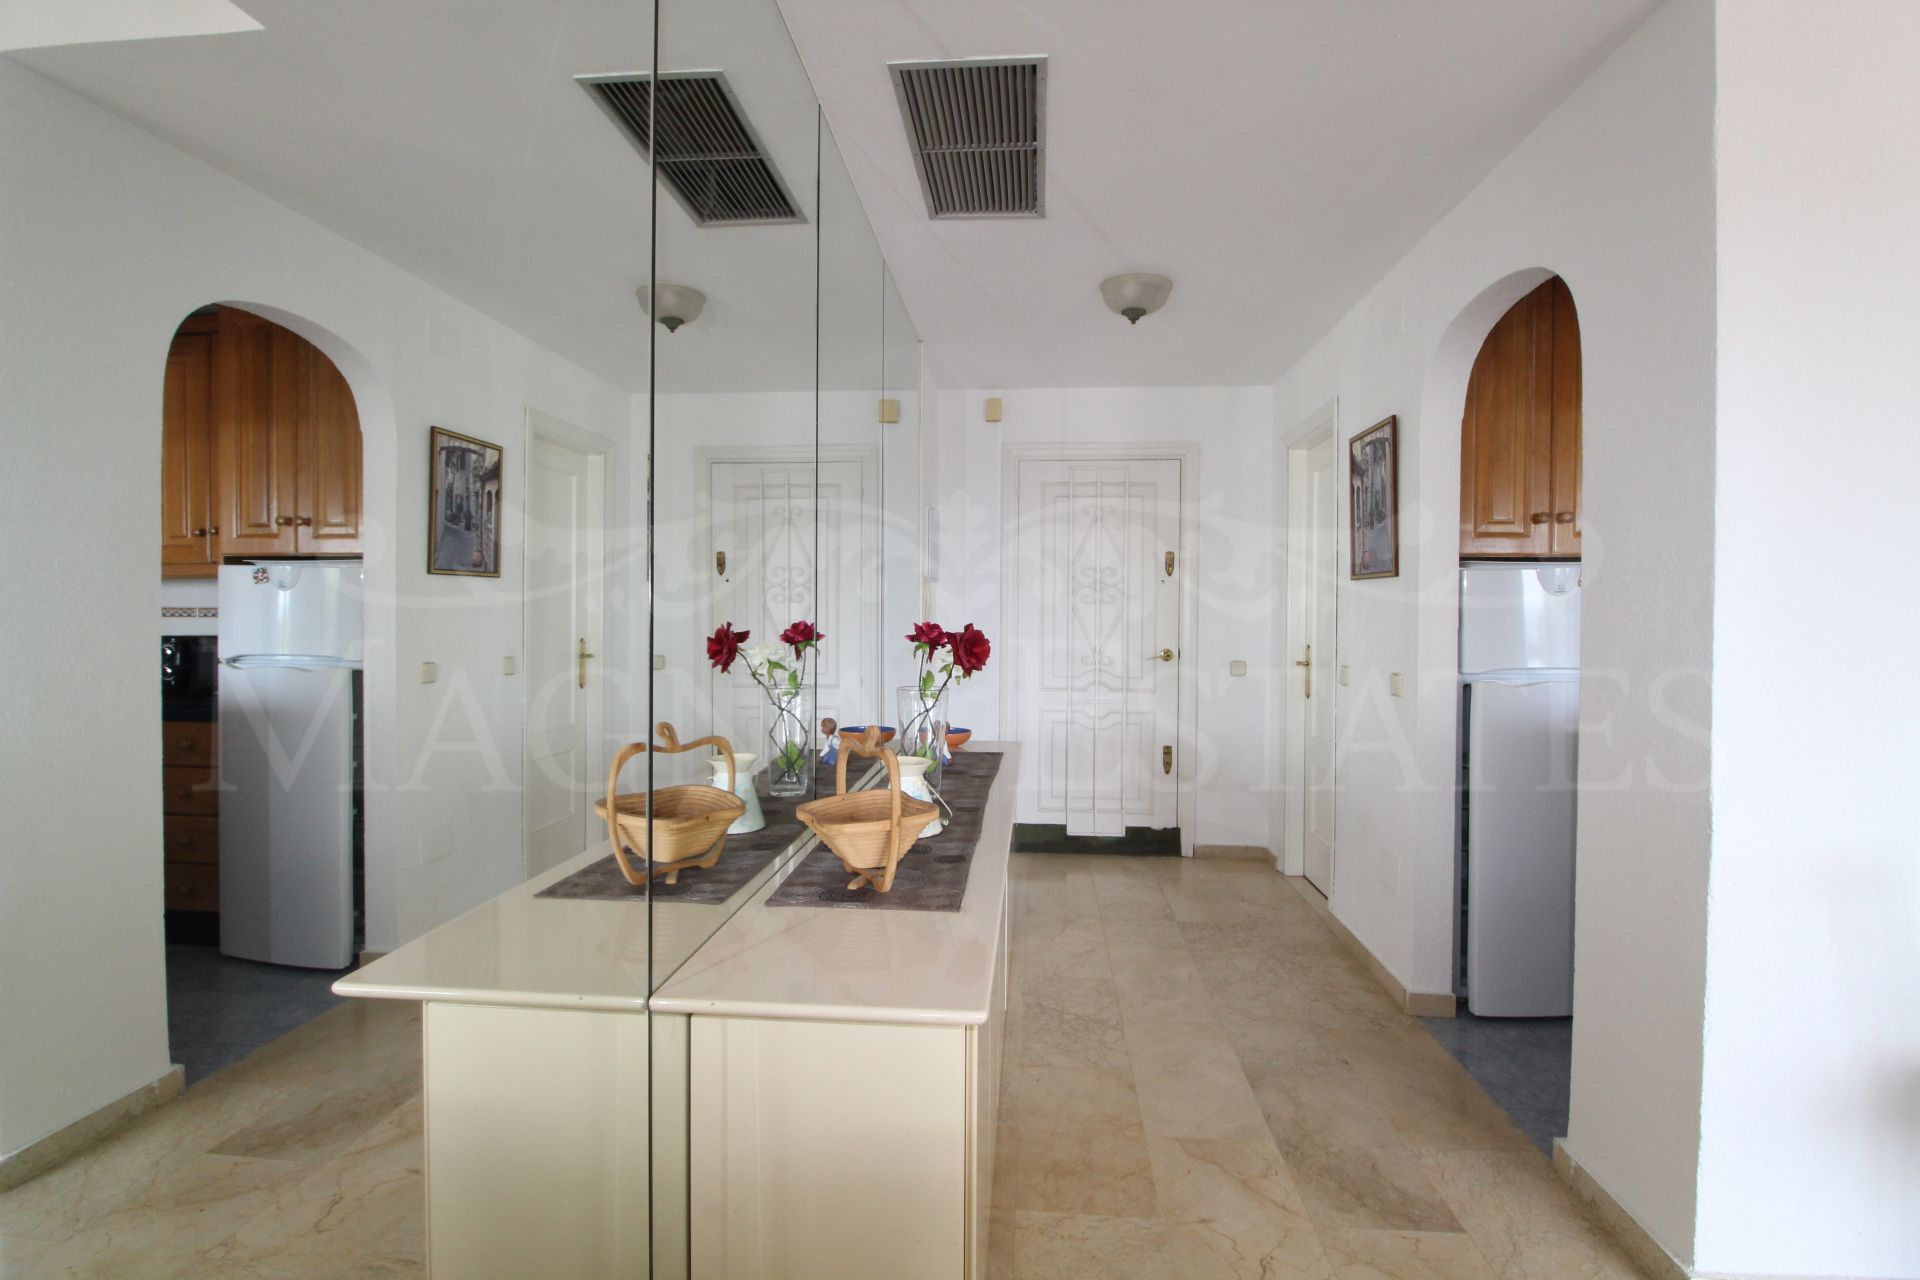 Holiday rental apartment in Puerto Banús, with sea views